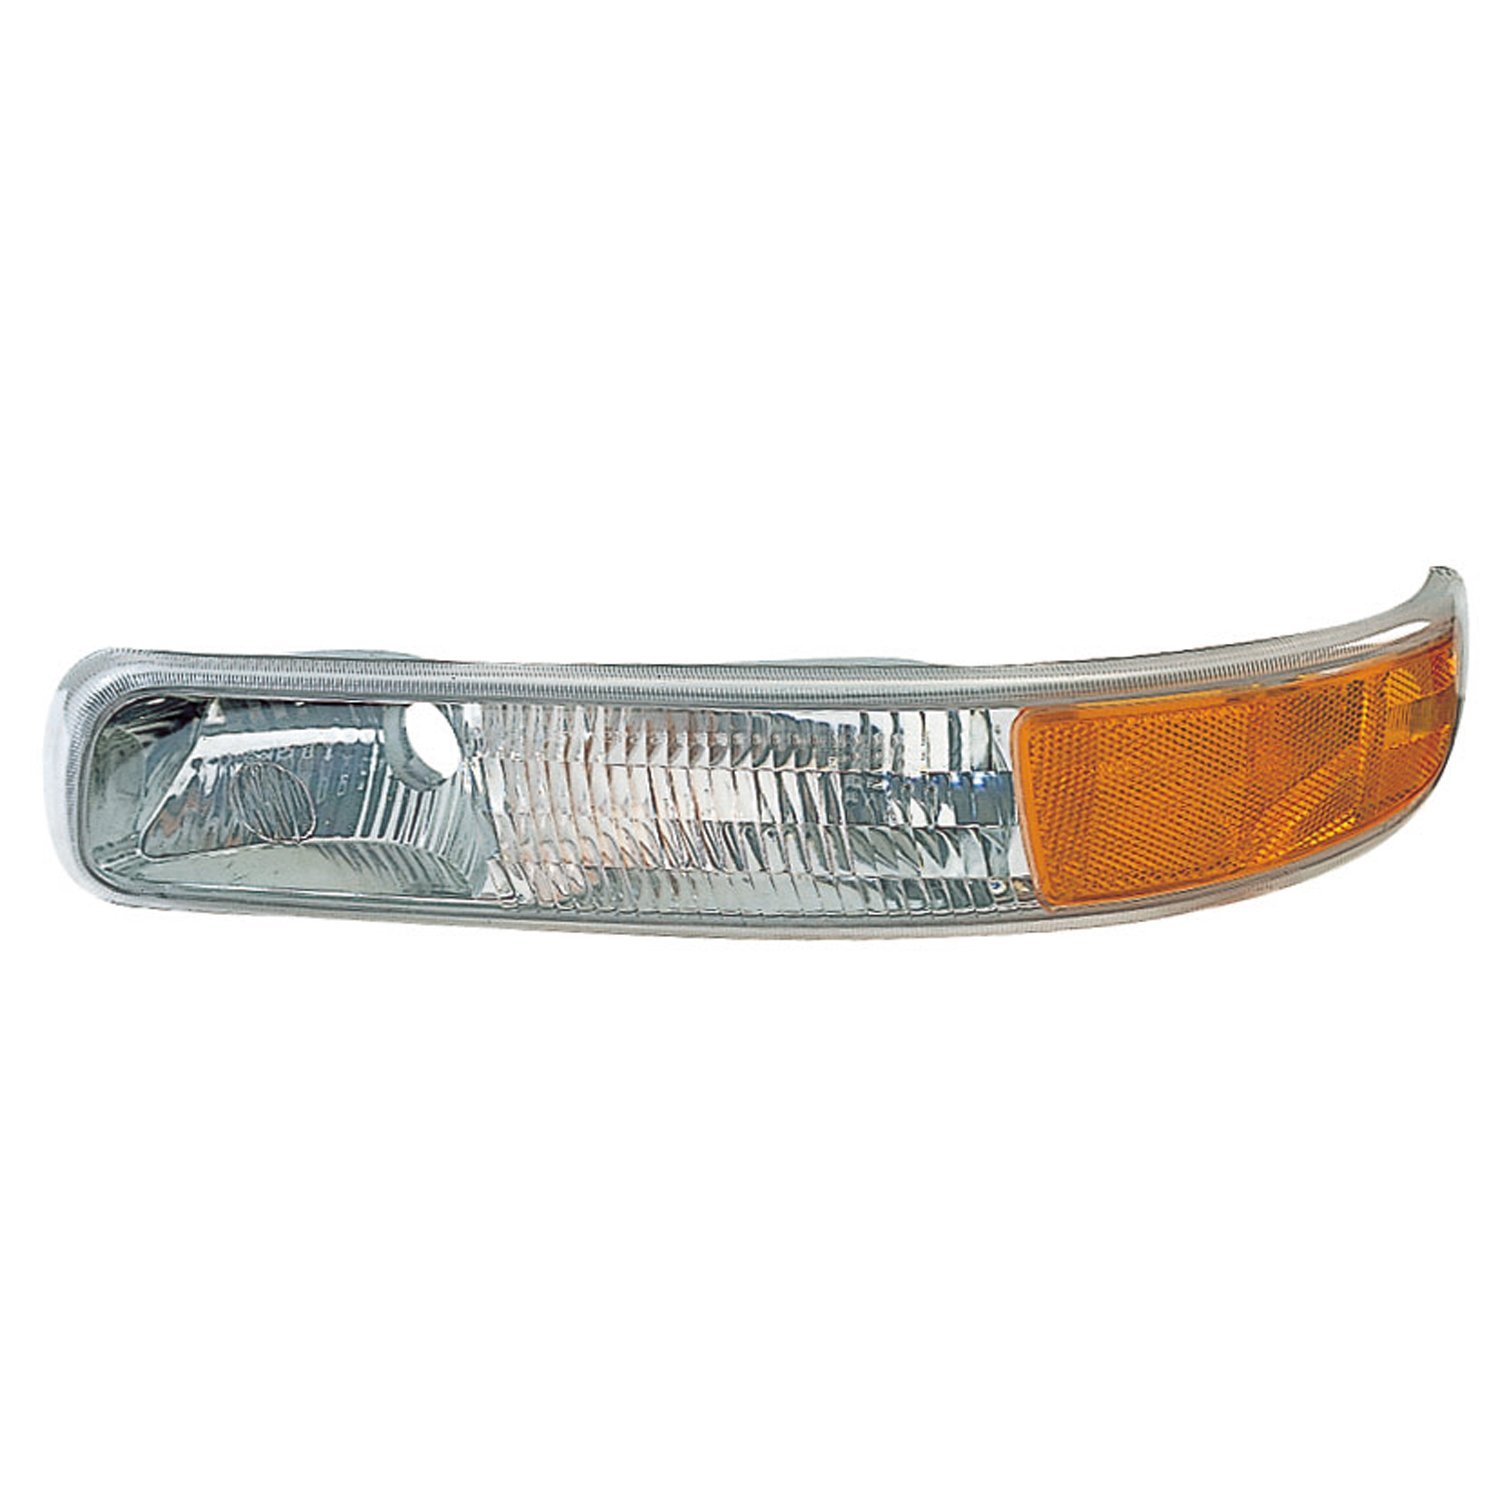 OE Replacement Parking//Clearance Light Assembly CHEVROLET TAHOE 2000+ 2000-2006 Multiple Manufacturers GM2521173C Partslink GM2521173